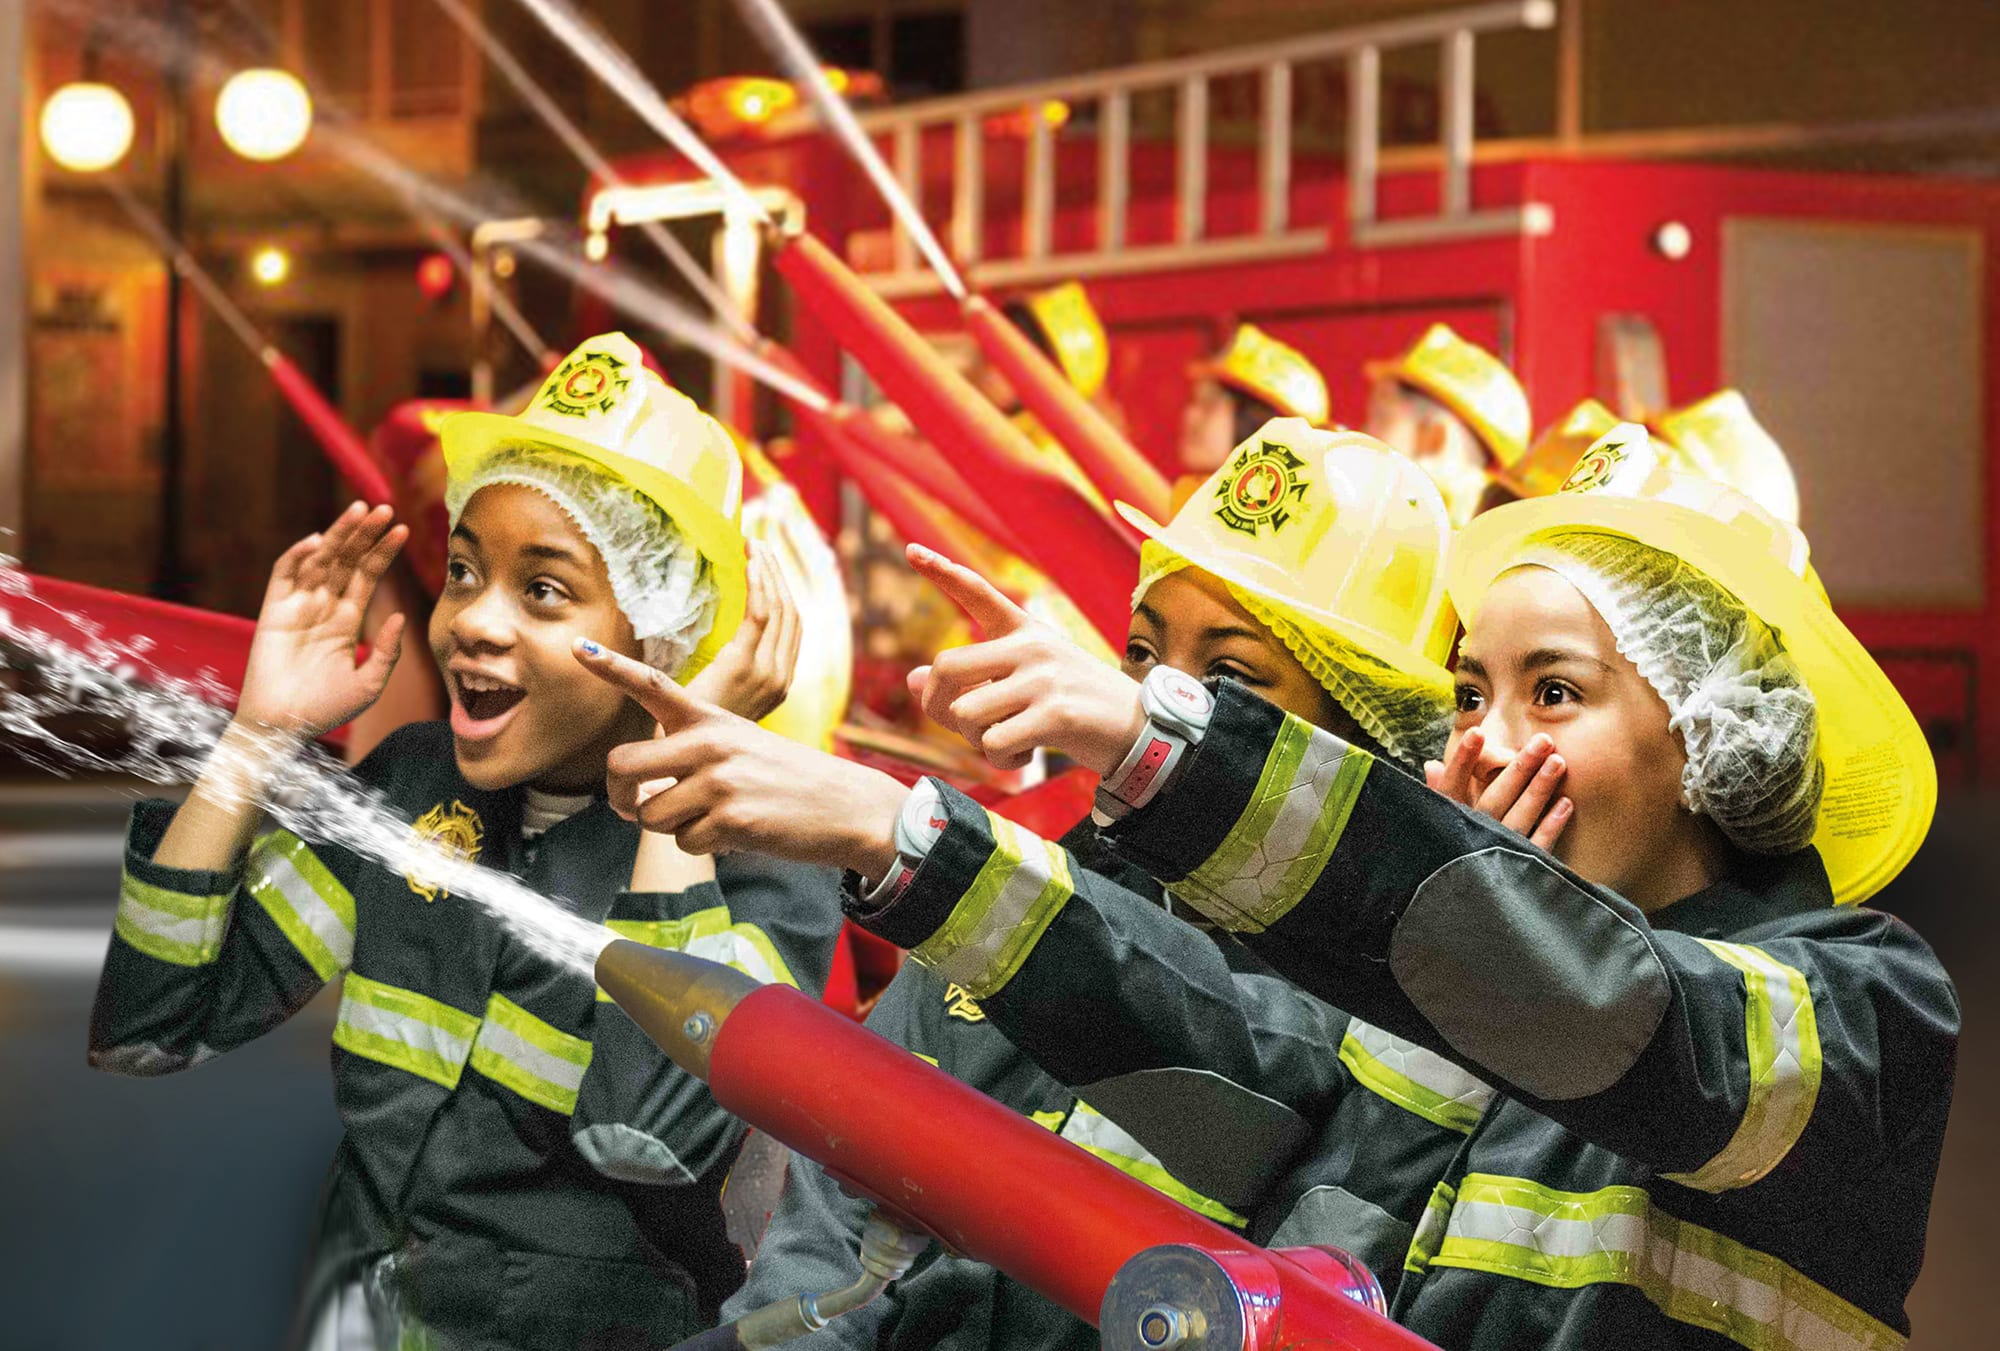 Abu Dhabi's first Kidzania to open 2018 in Yas Mall